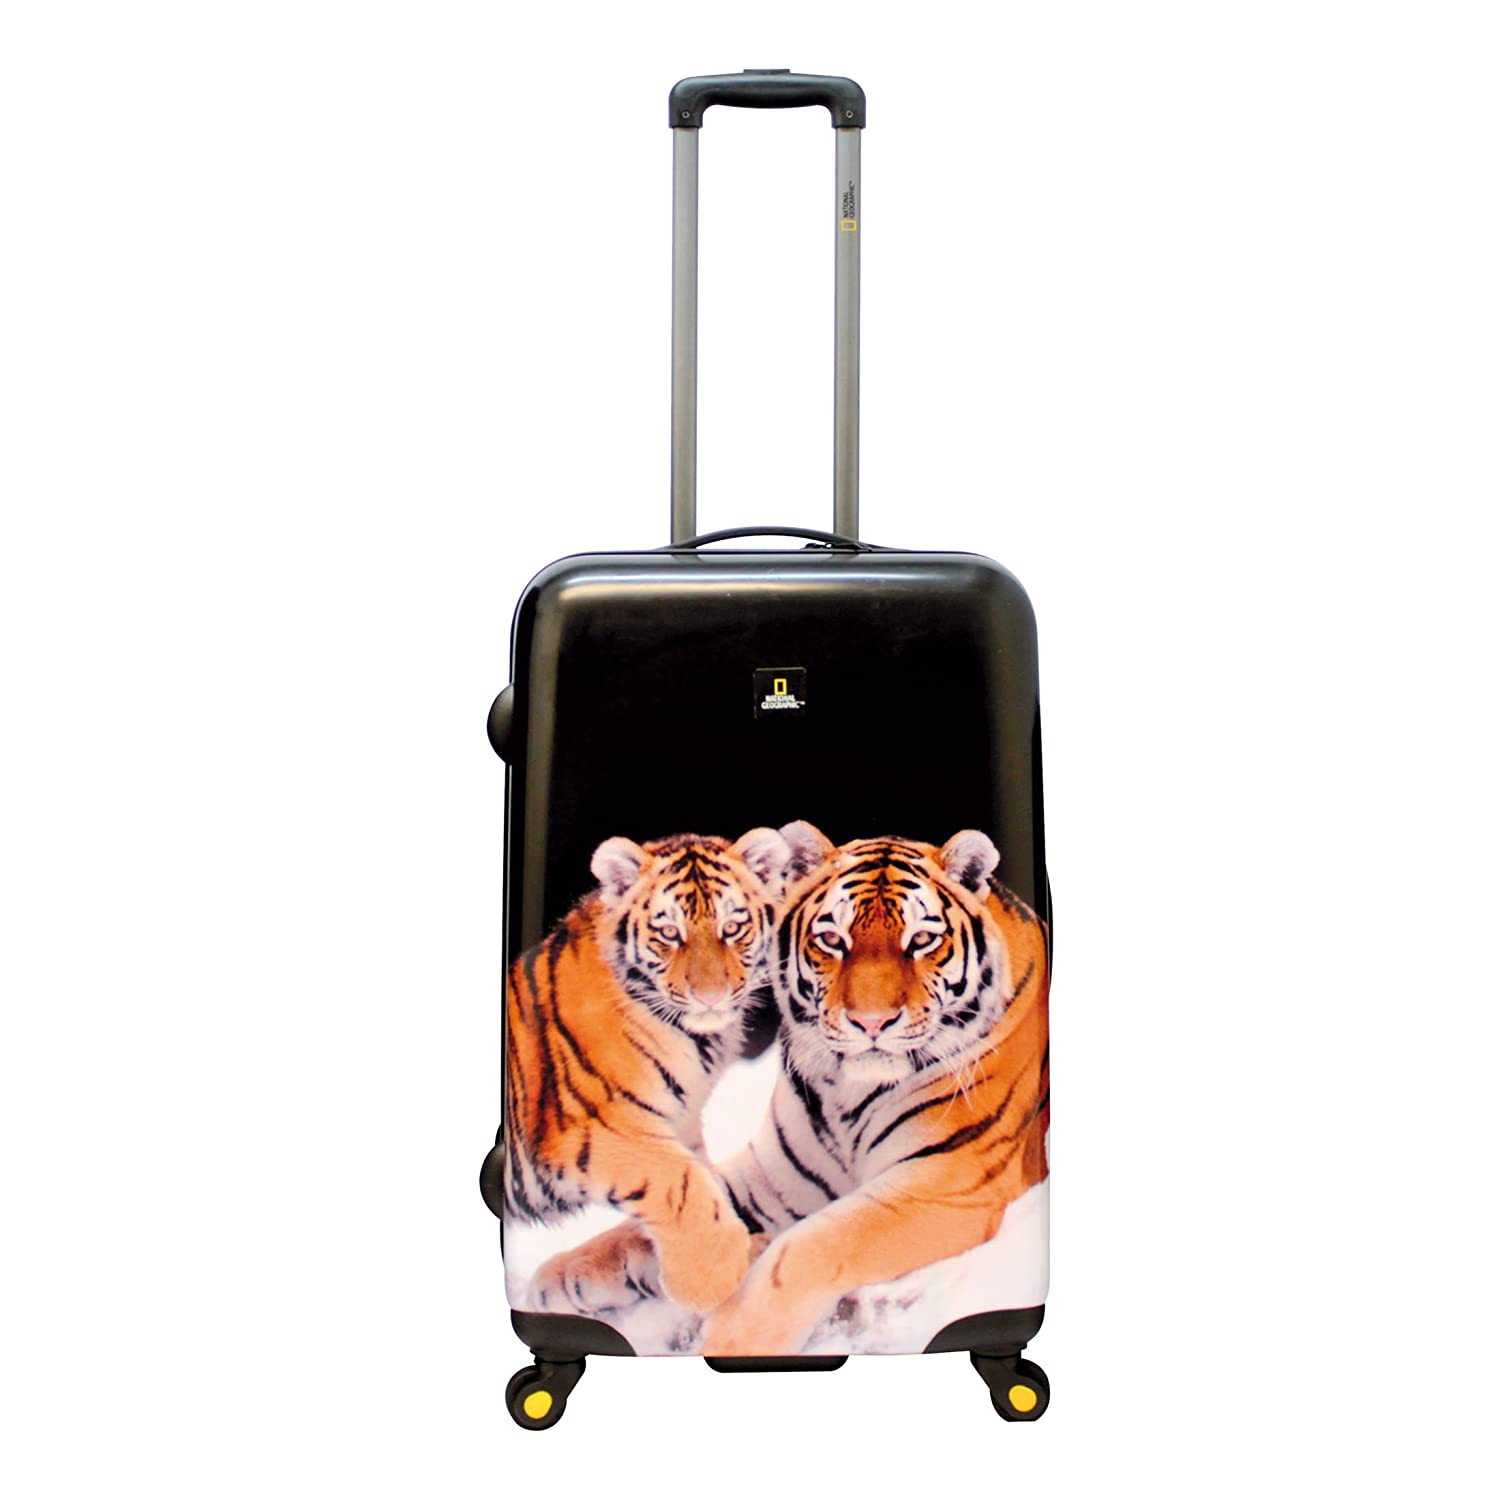 National Geographic Nature of Love Tiger Maleta a 4 Ruedas 68 cm: Amazon.es: Equipaje